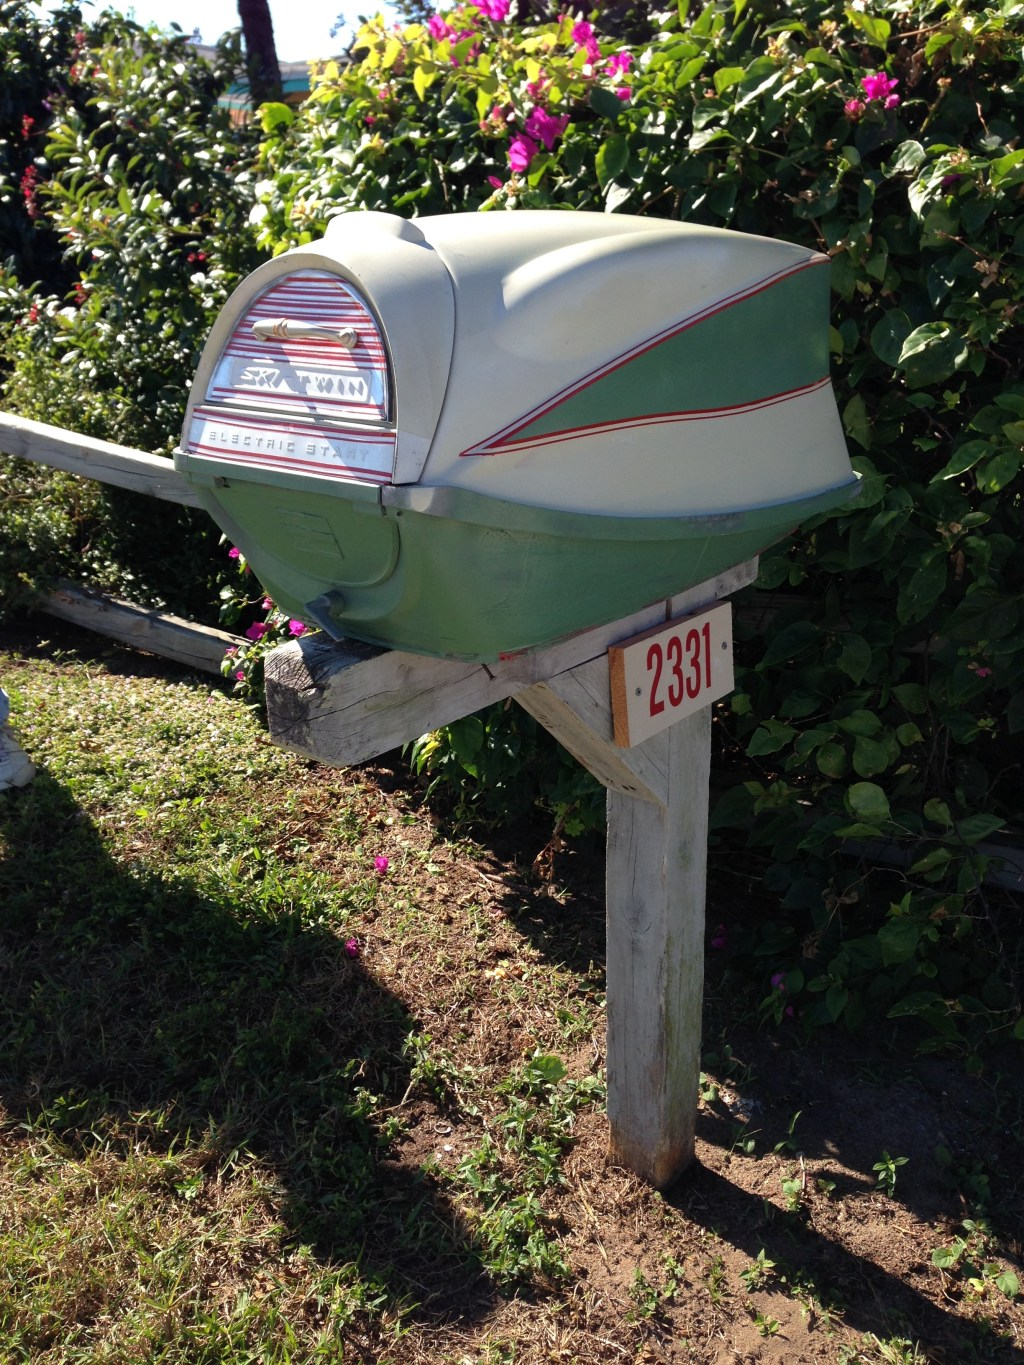 Evinrude Outboard Cover Mailbox